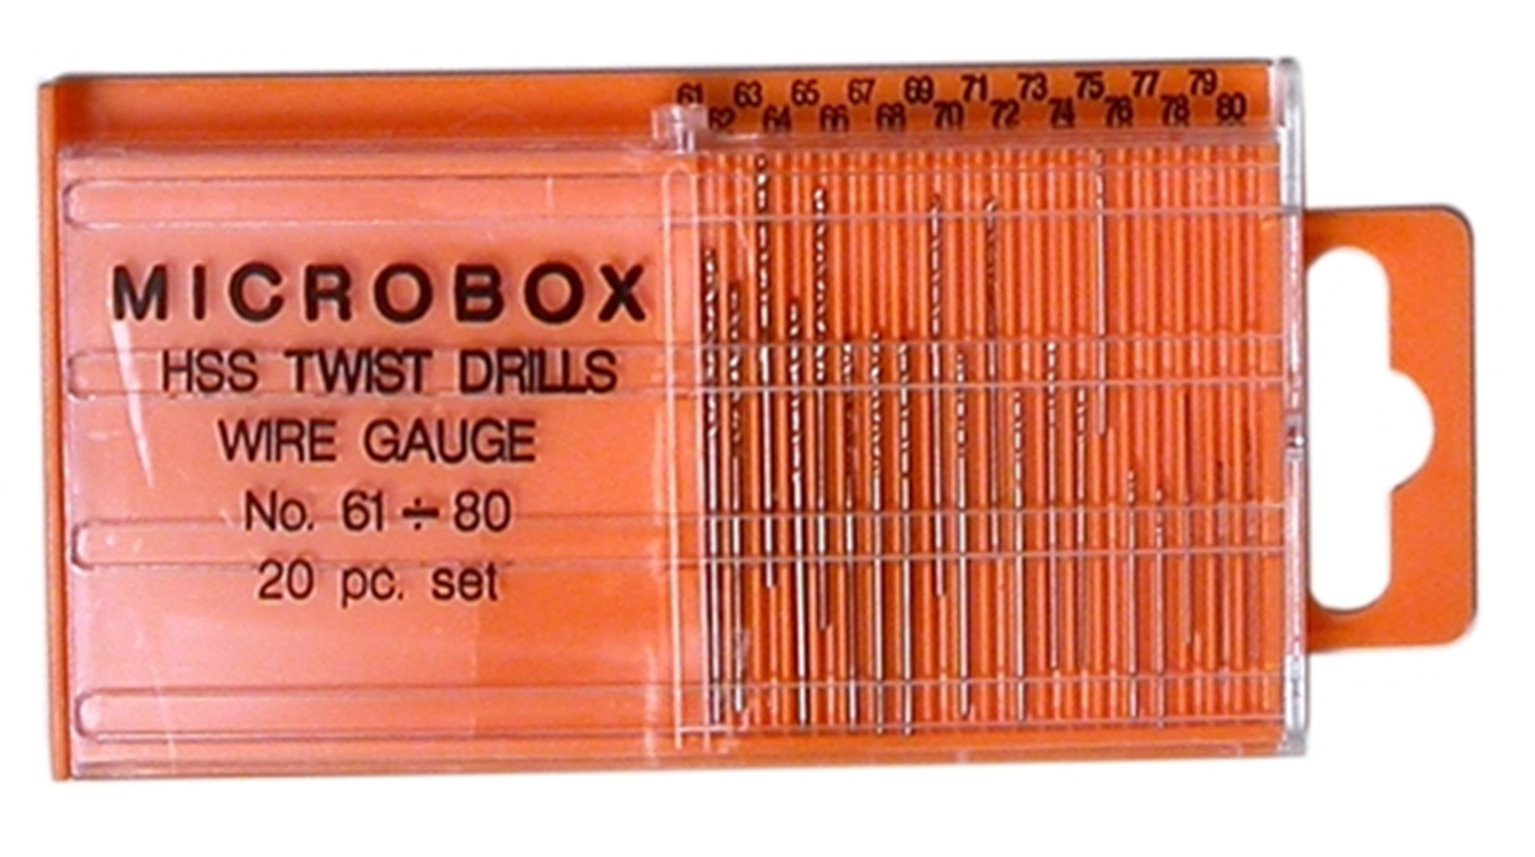 Gm649 microbox hss twist drill bit set 61 80 gauge any scale by microbox hss twist drill bit set 61 80 gauge keyboard keysfo Image collections